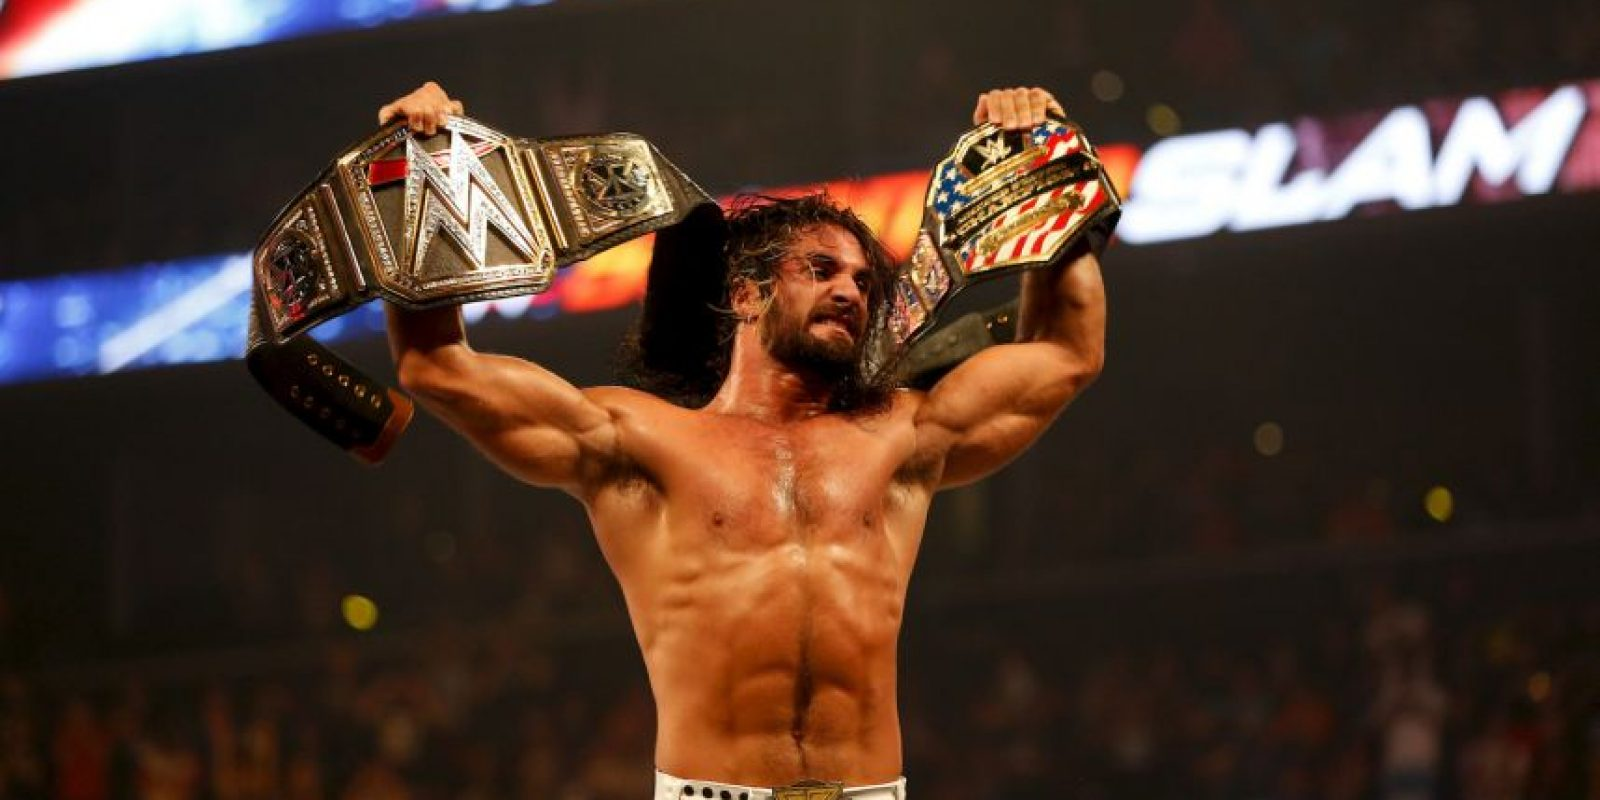 Posee varios títulos dentro de la WWE. Los principales son Campeón del Mundo de Peso Pesado de la WWE (actual), Campeón de Estados Unidos de la WWE (Actual) y Money in the Bank (2014). Foto: Getty Images